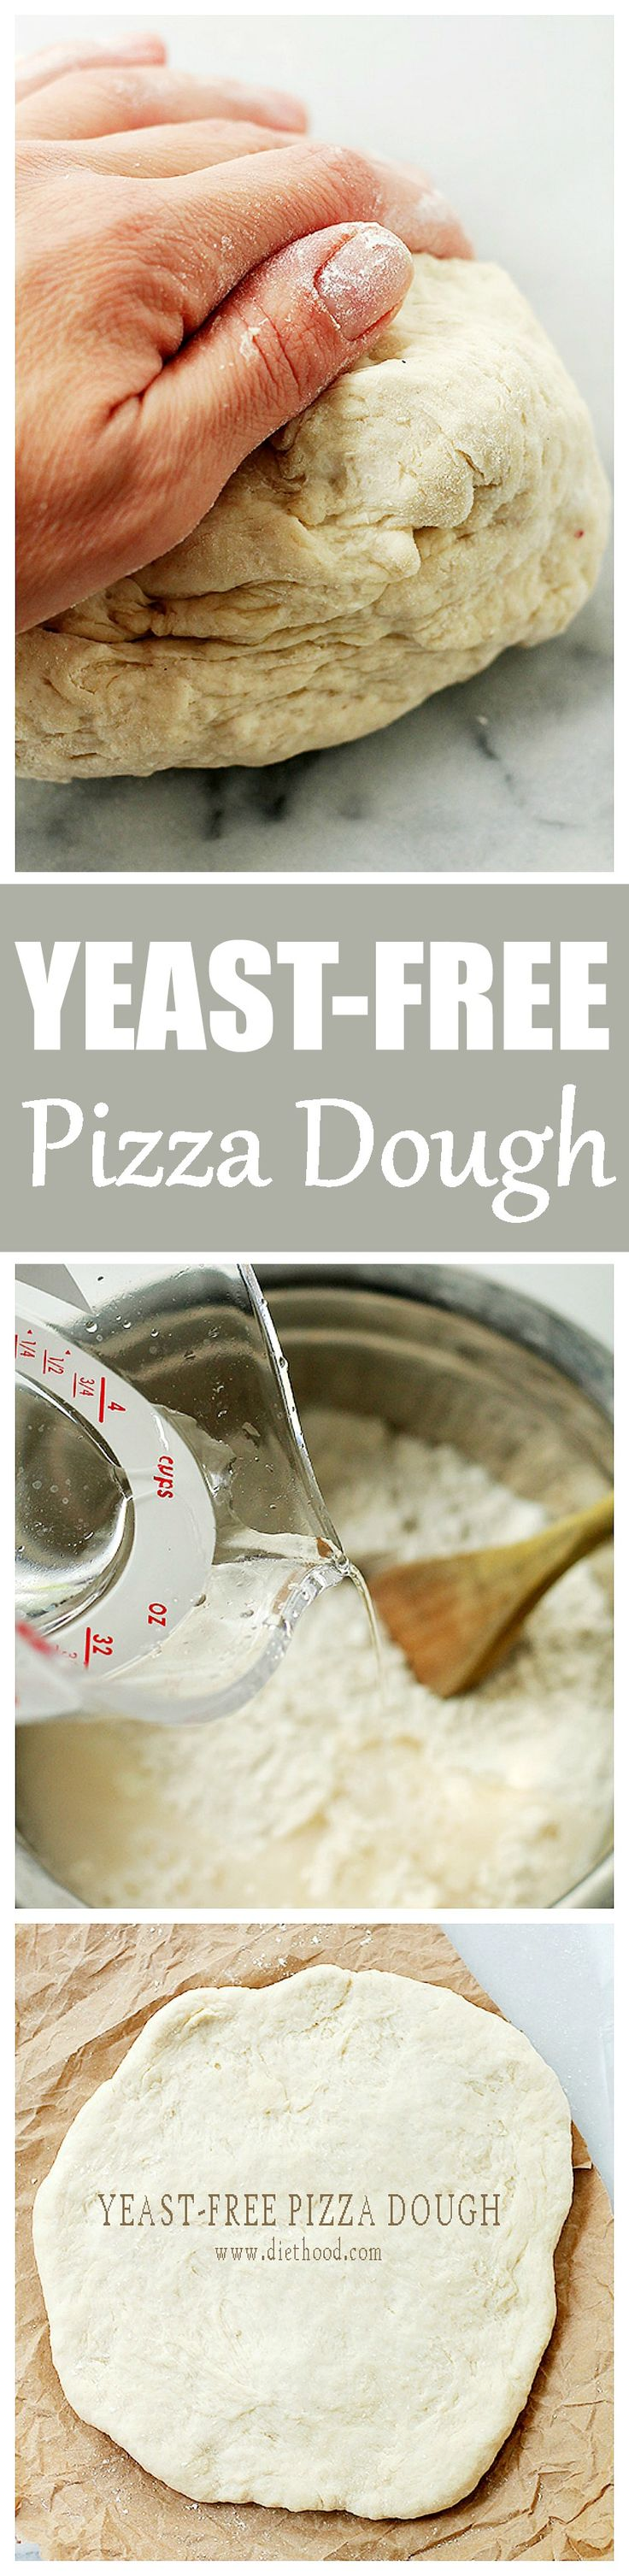 Yeast-Free Pizza Dough | www.diethood.com | Fast and simple recipe for Pizza Dough made without yeast that is delicious and SO easy to make!